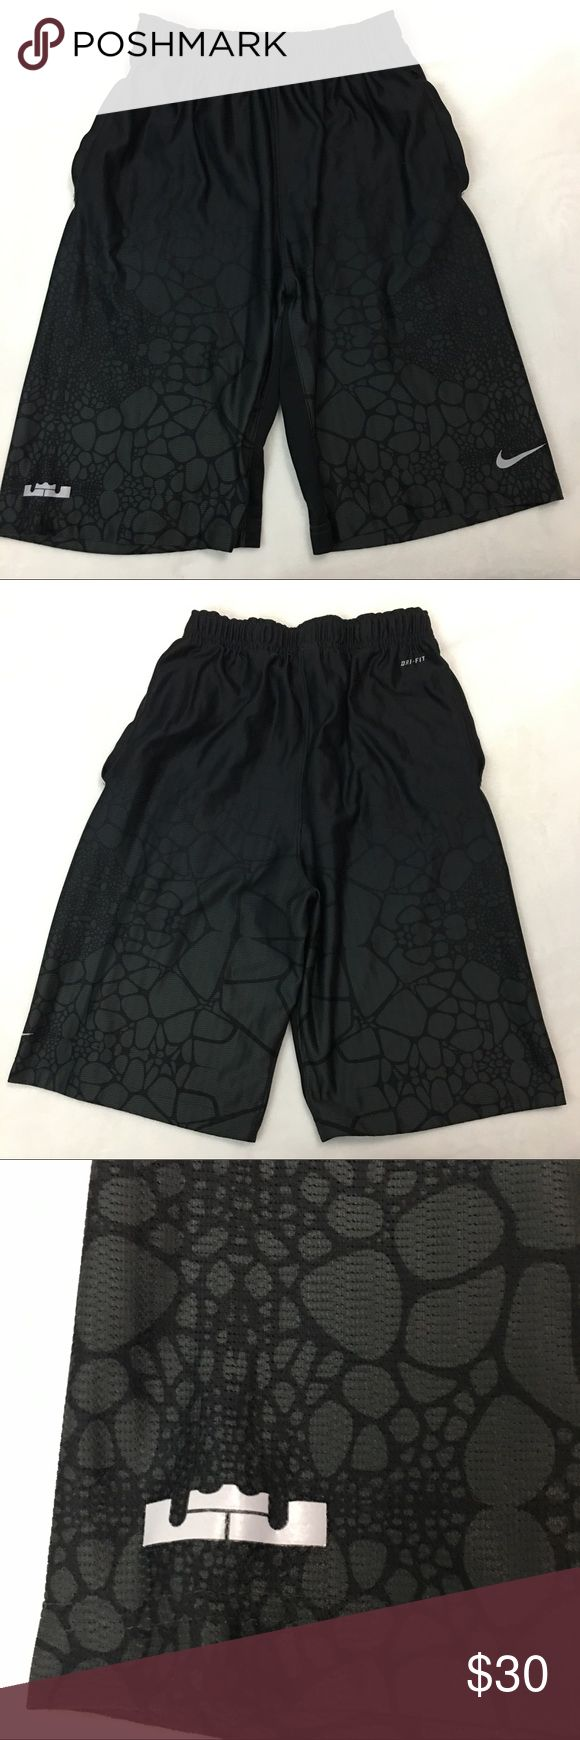 """Nike Dri-Fit Lebron James Basketball Shorts Size L This is a pair of men's Nike Dri-Fit Lebron James Black Basketball Shorts Size Large. These shorts are still in excellent gently used condition with no stains or any visible defects. Measurements are as followed: Waist: 12"""" Unstretched Inseam: 10 1/2"""". Please take a look at all photos for condition and if you have any questions feel free to ask. Nike Shorts Athletic"""